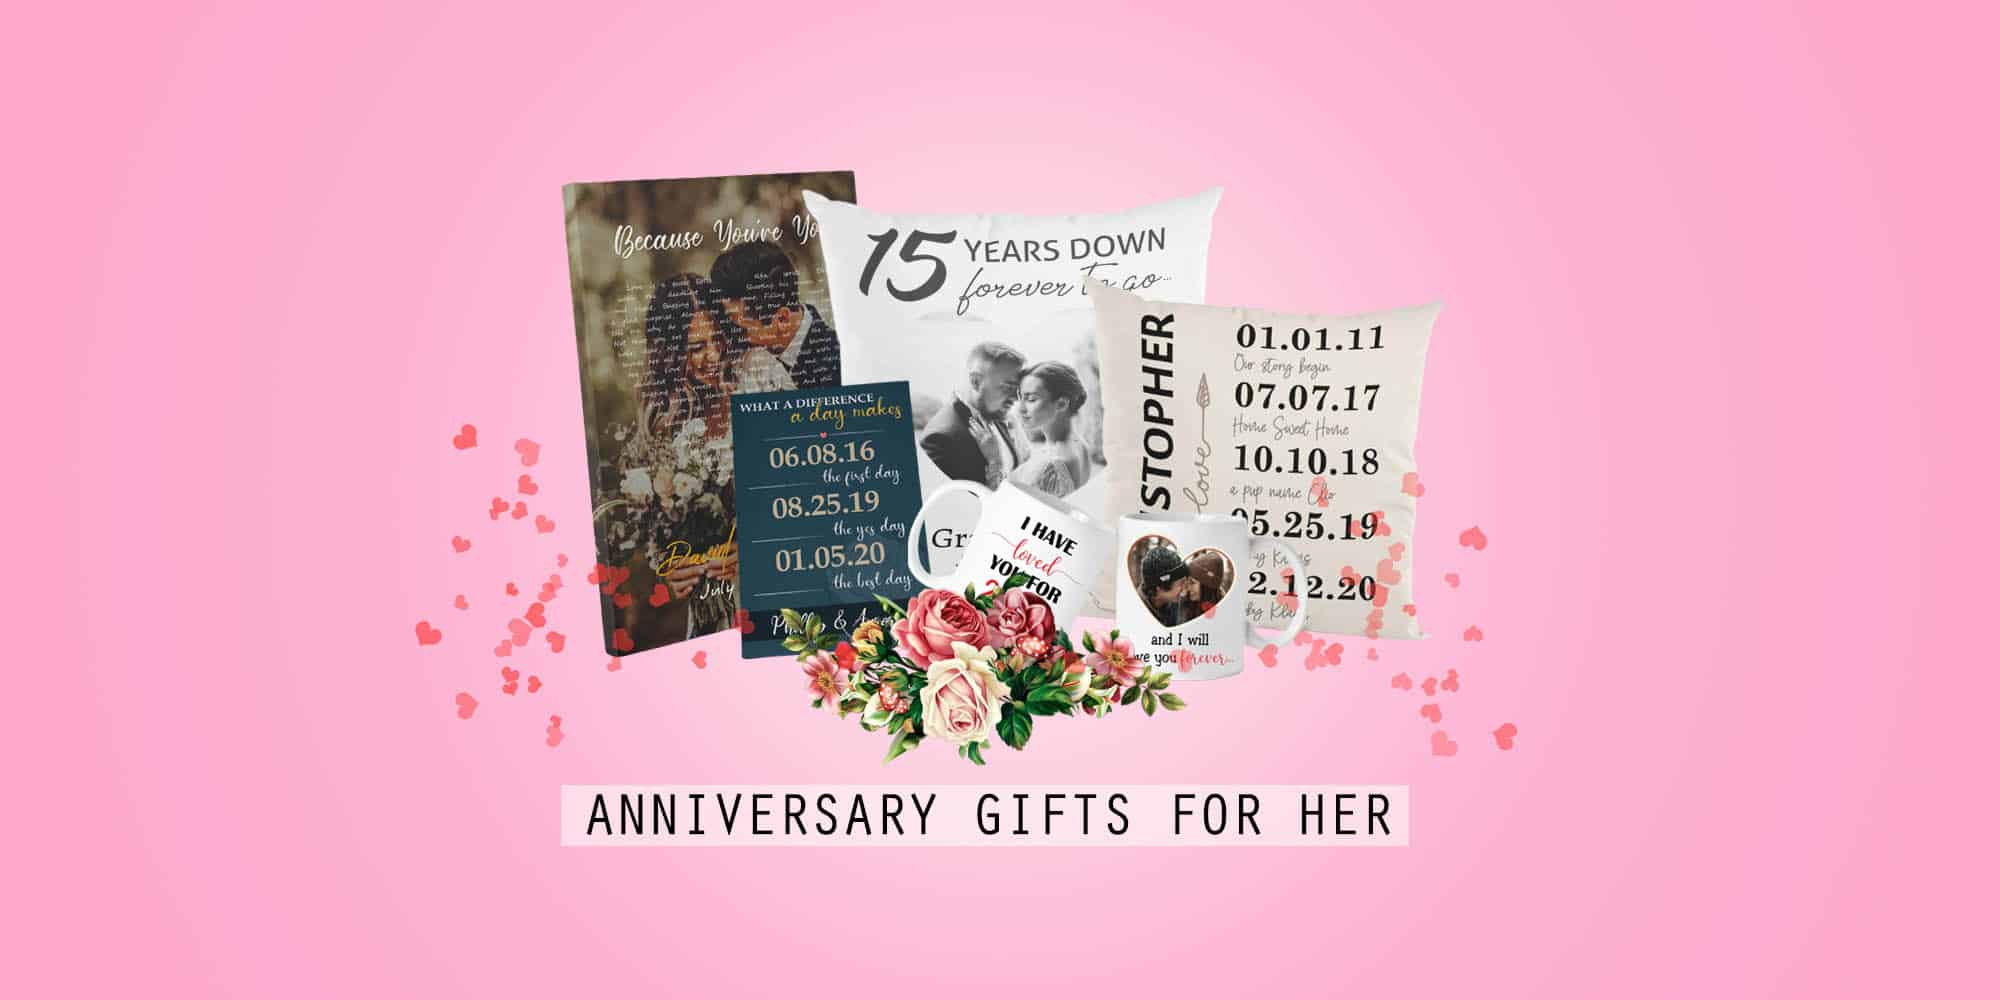 45 Best Anniversary Gift Ideas for Her That She'll Love (2021)